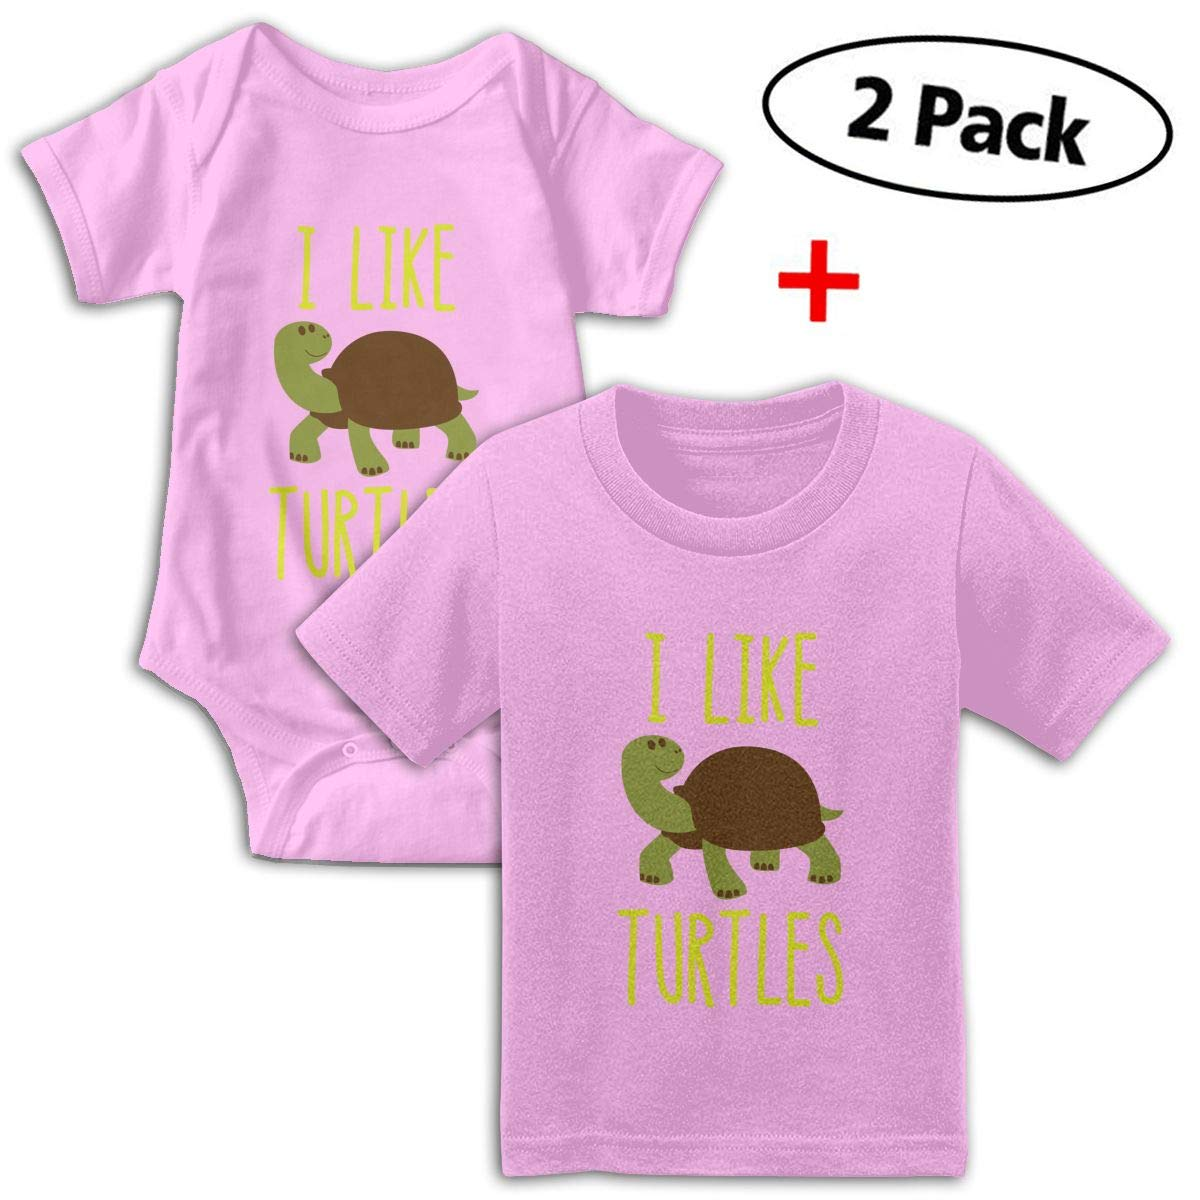 I Like Turtles Babys Boys /& Girls Short Sleeve Baby Climbing Clothes And T-shirt